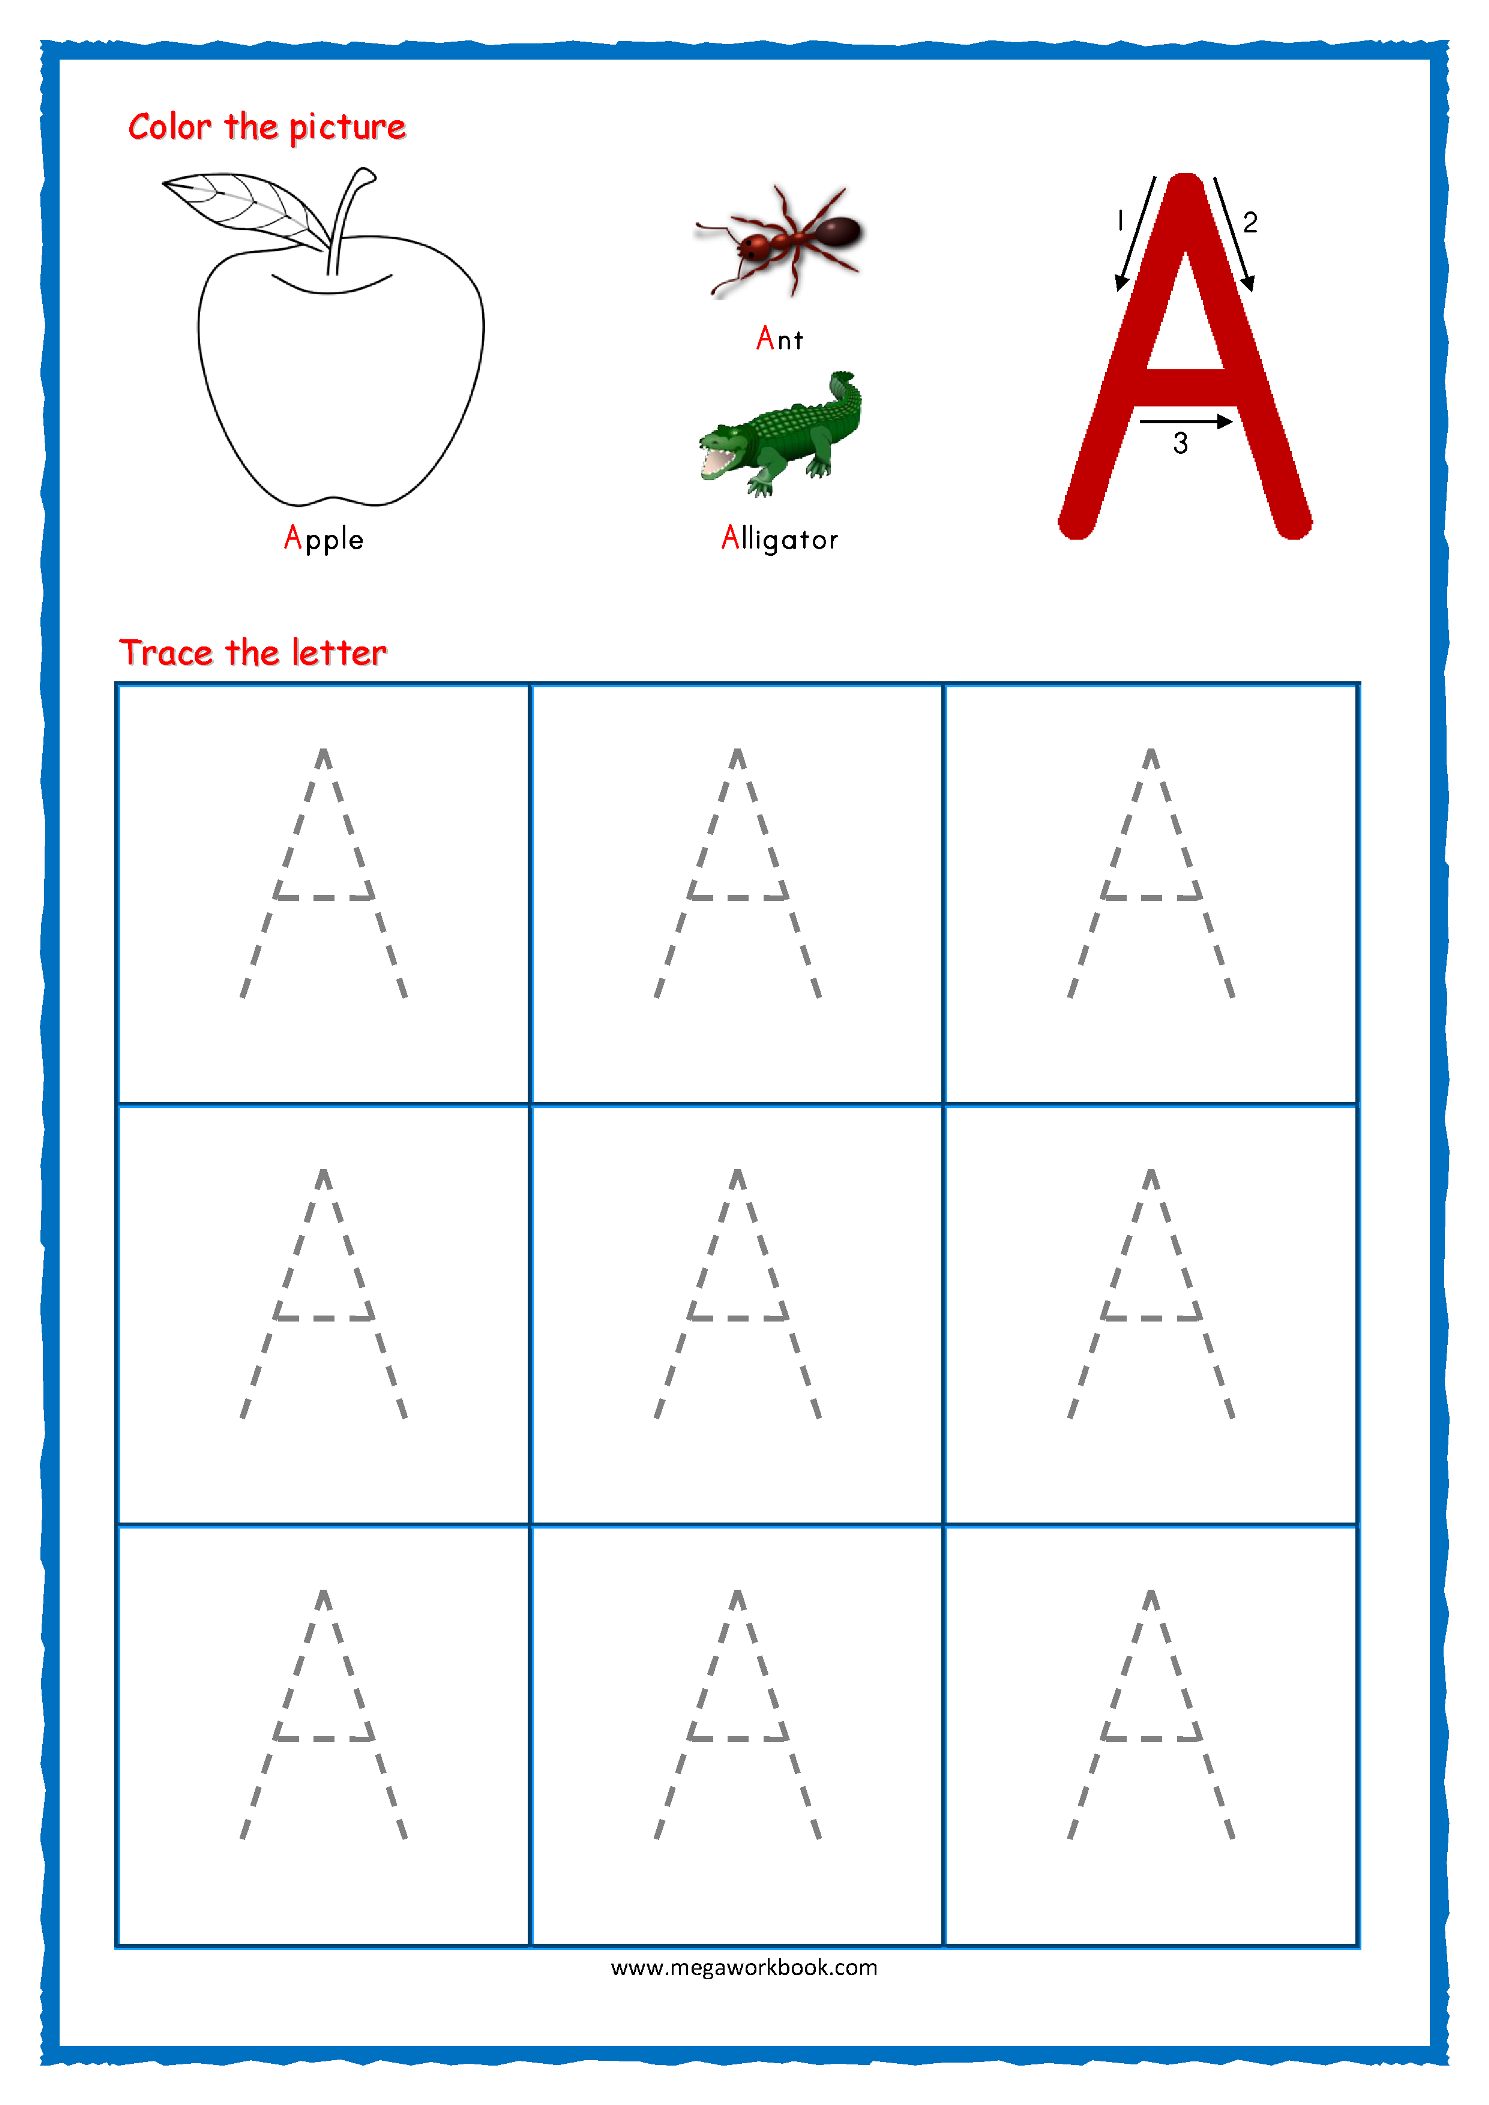 Tracing Letters - Alphabet Tracing - Capital Letters throughout Tracing Large Letters Worksheets